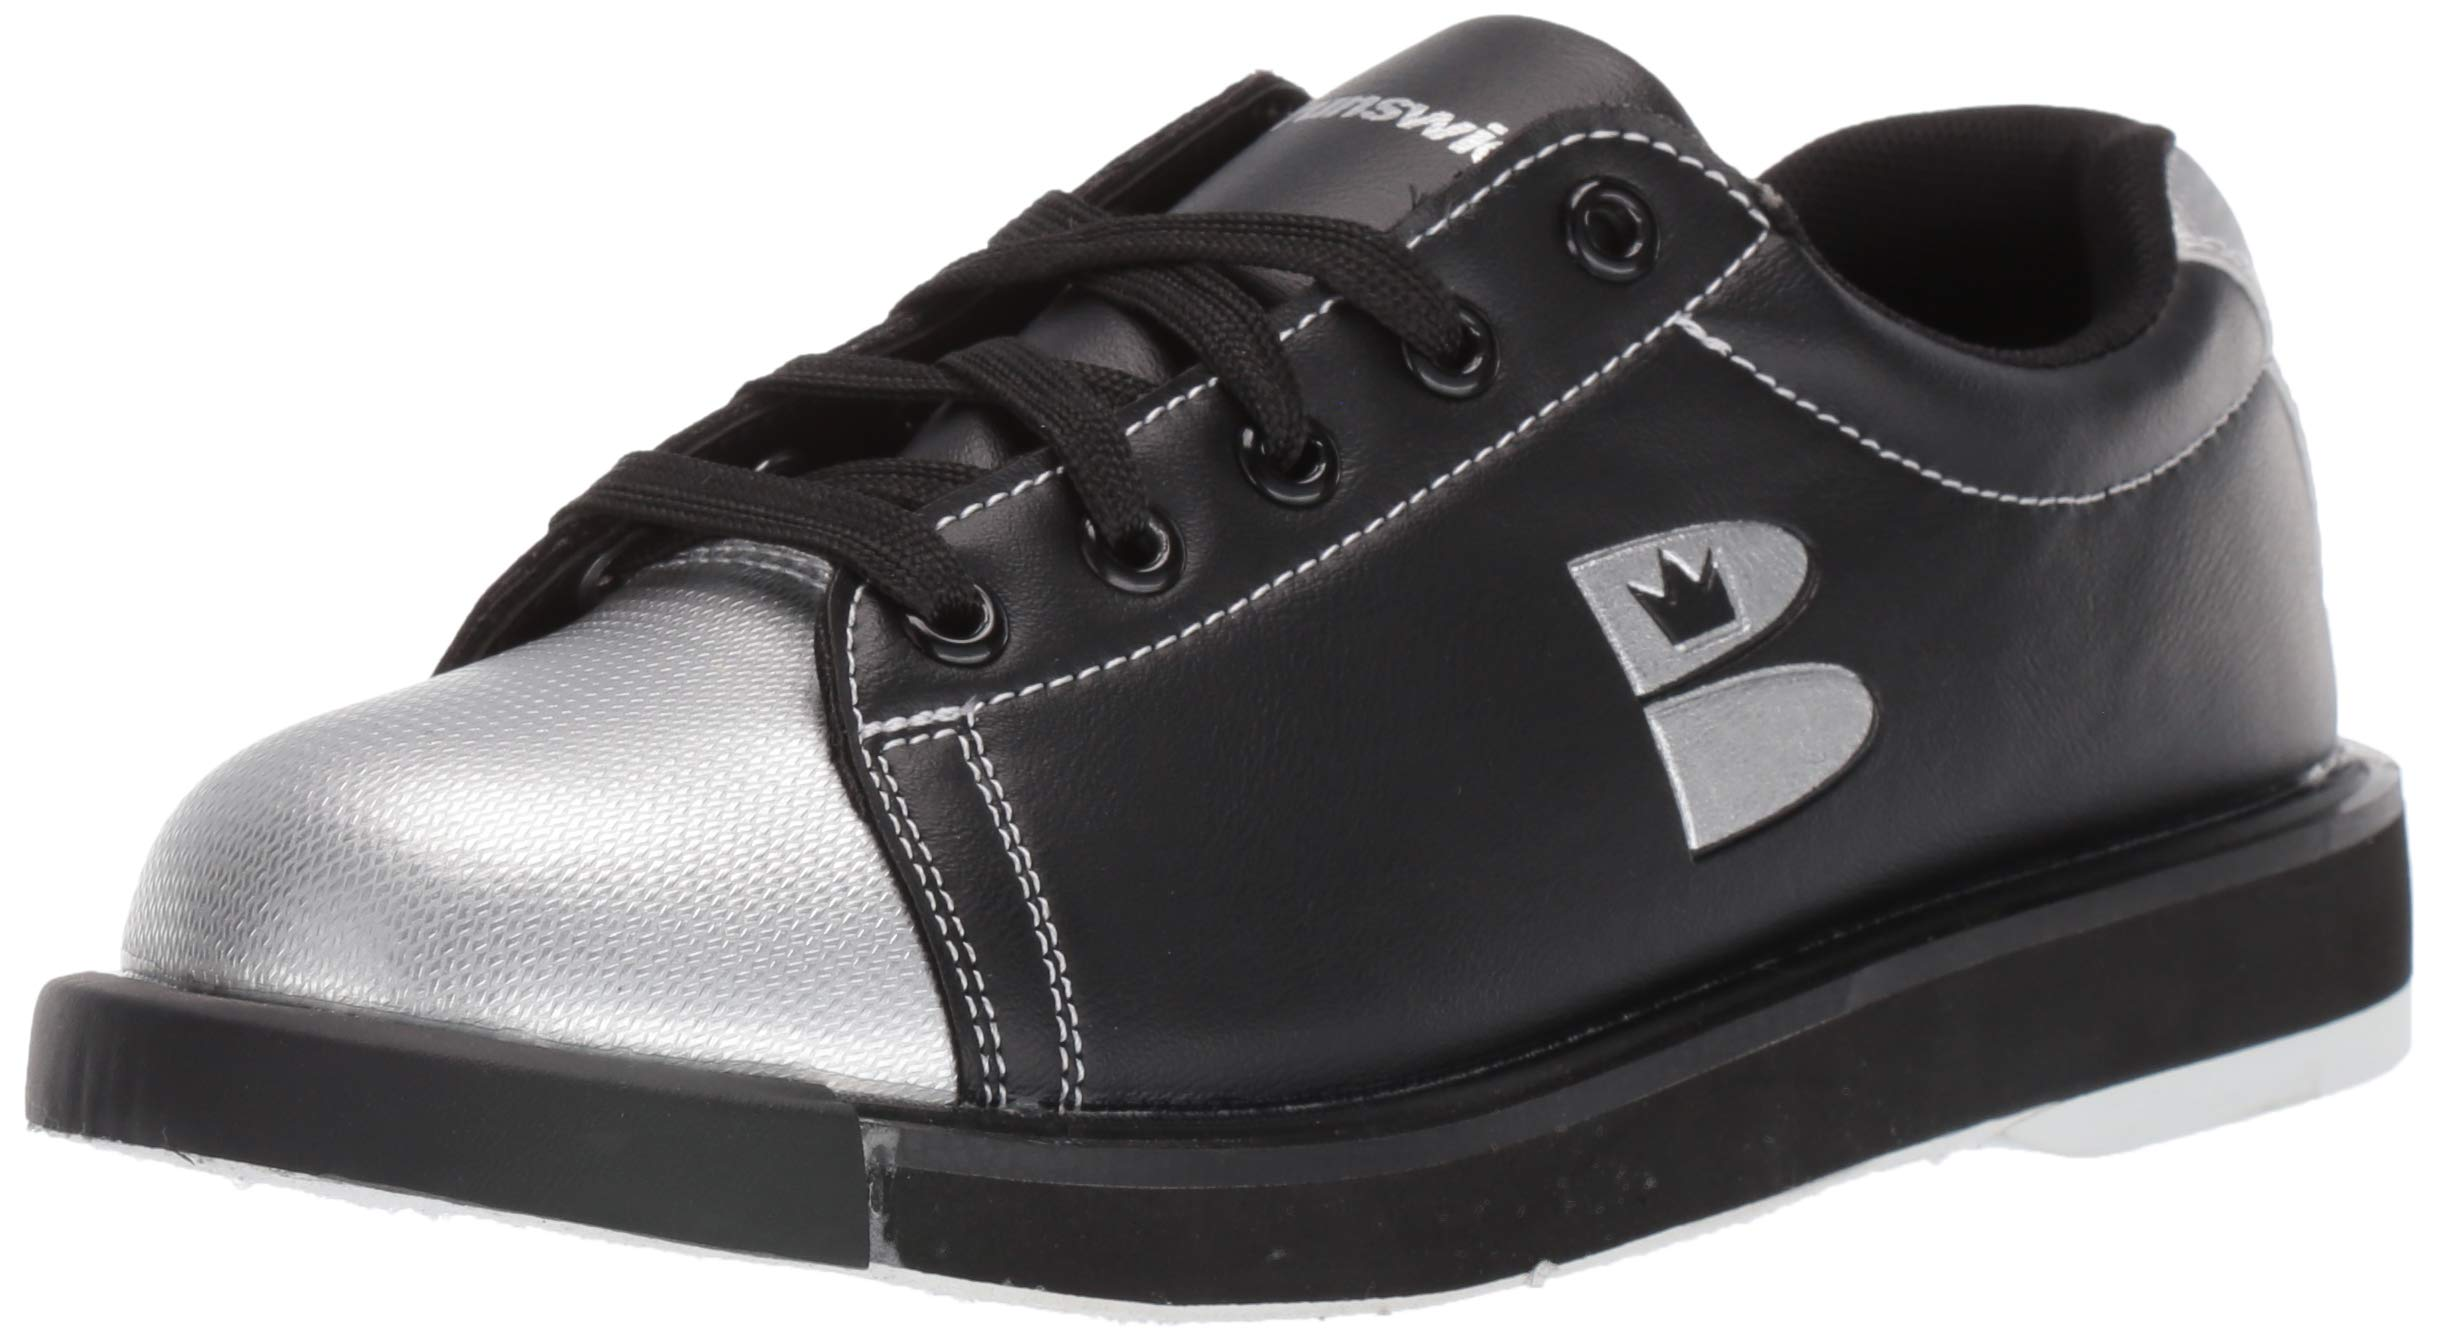 TZone Unisex Black/Silver Size 8/9.5 by Brunswick Bowling Products